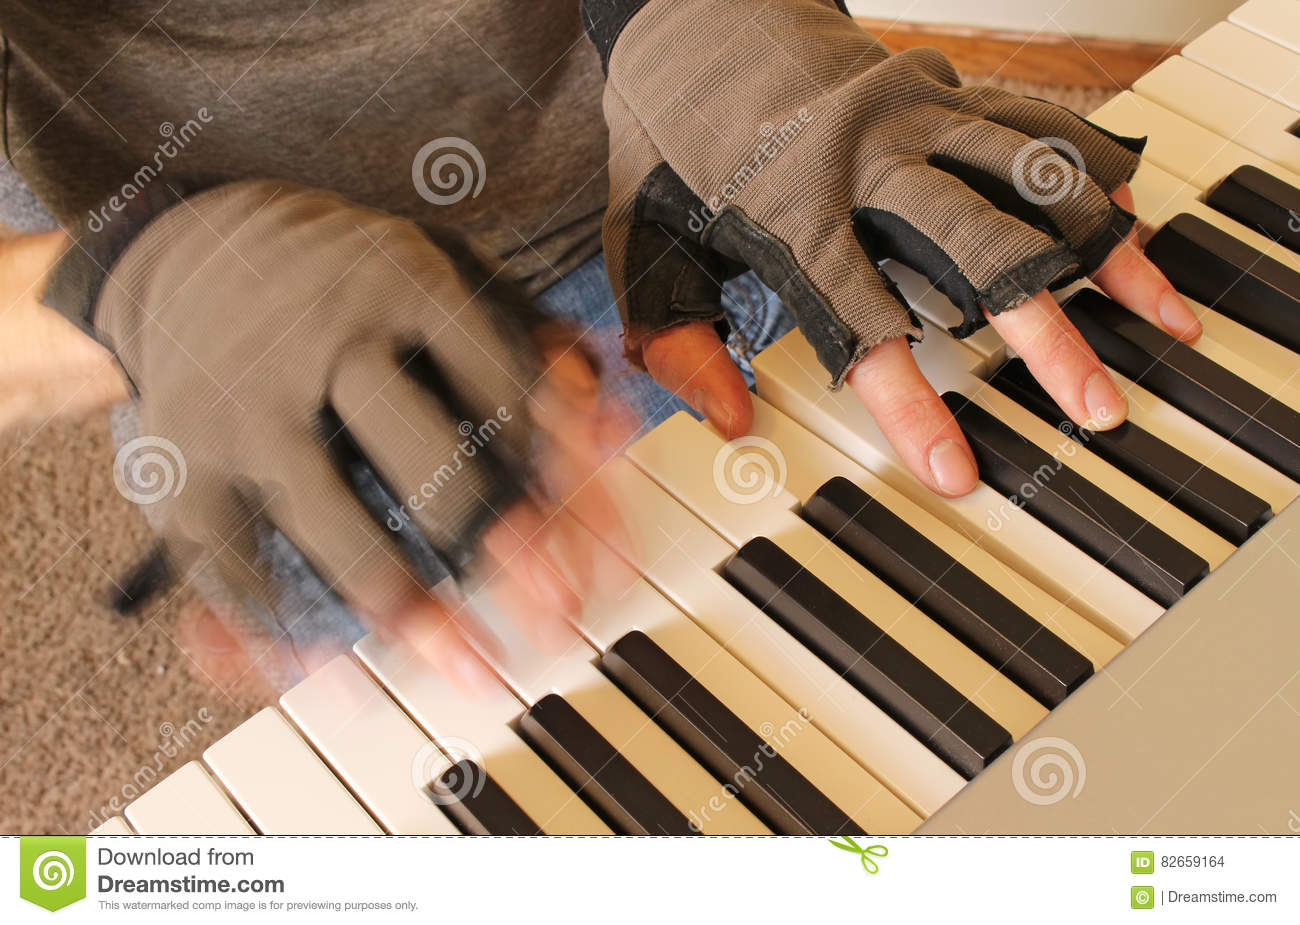 Fingerless gloves for musicians - A Pianist Wears Fingerless Gloves While Playing To Keep His Hands Warm